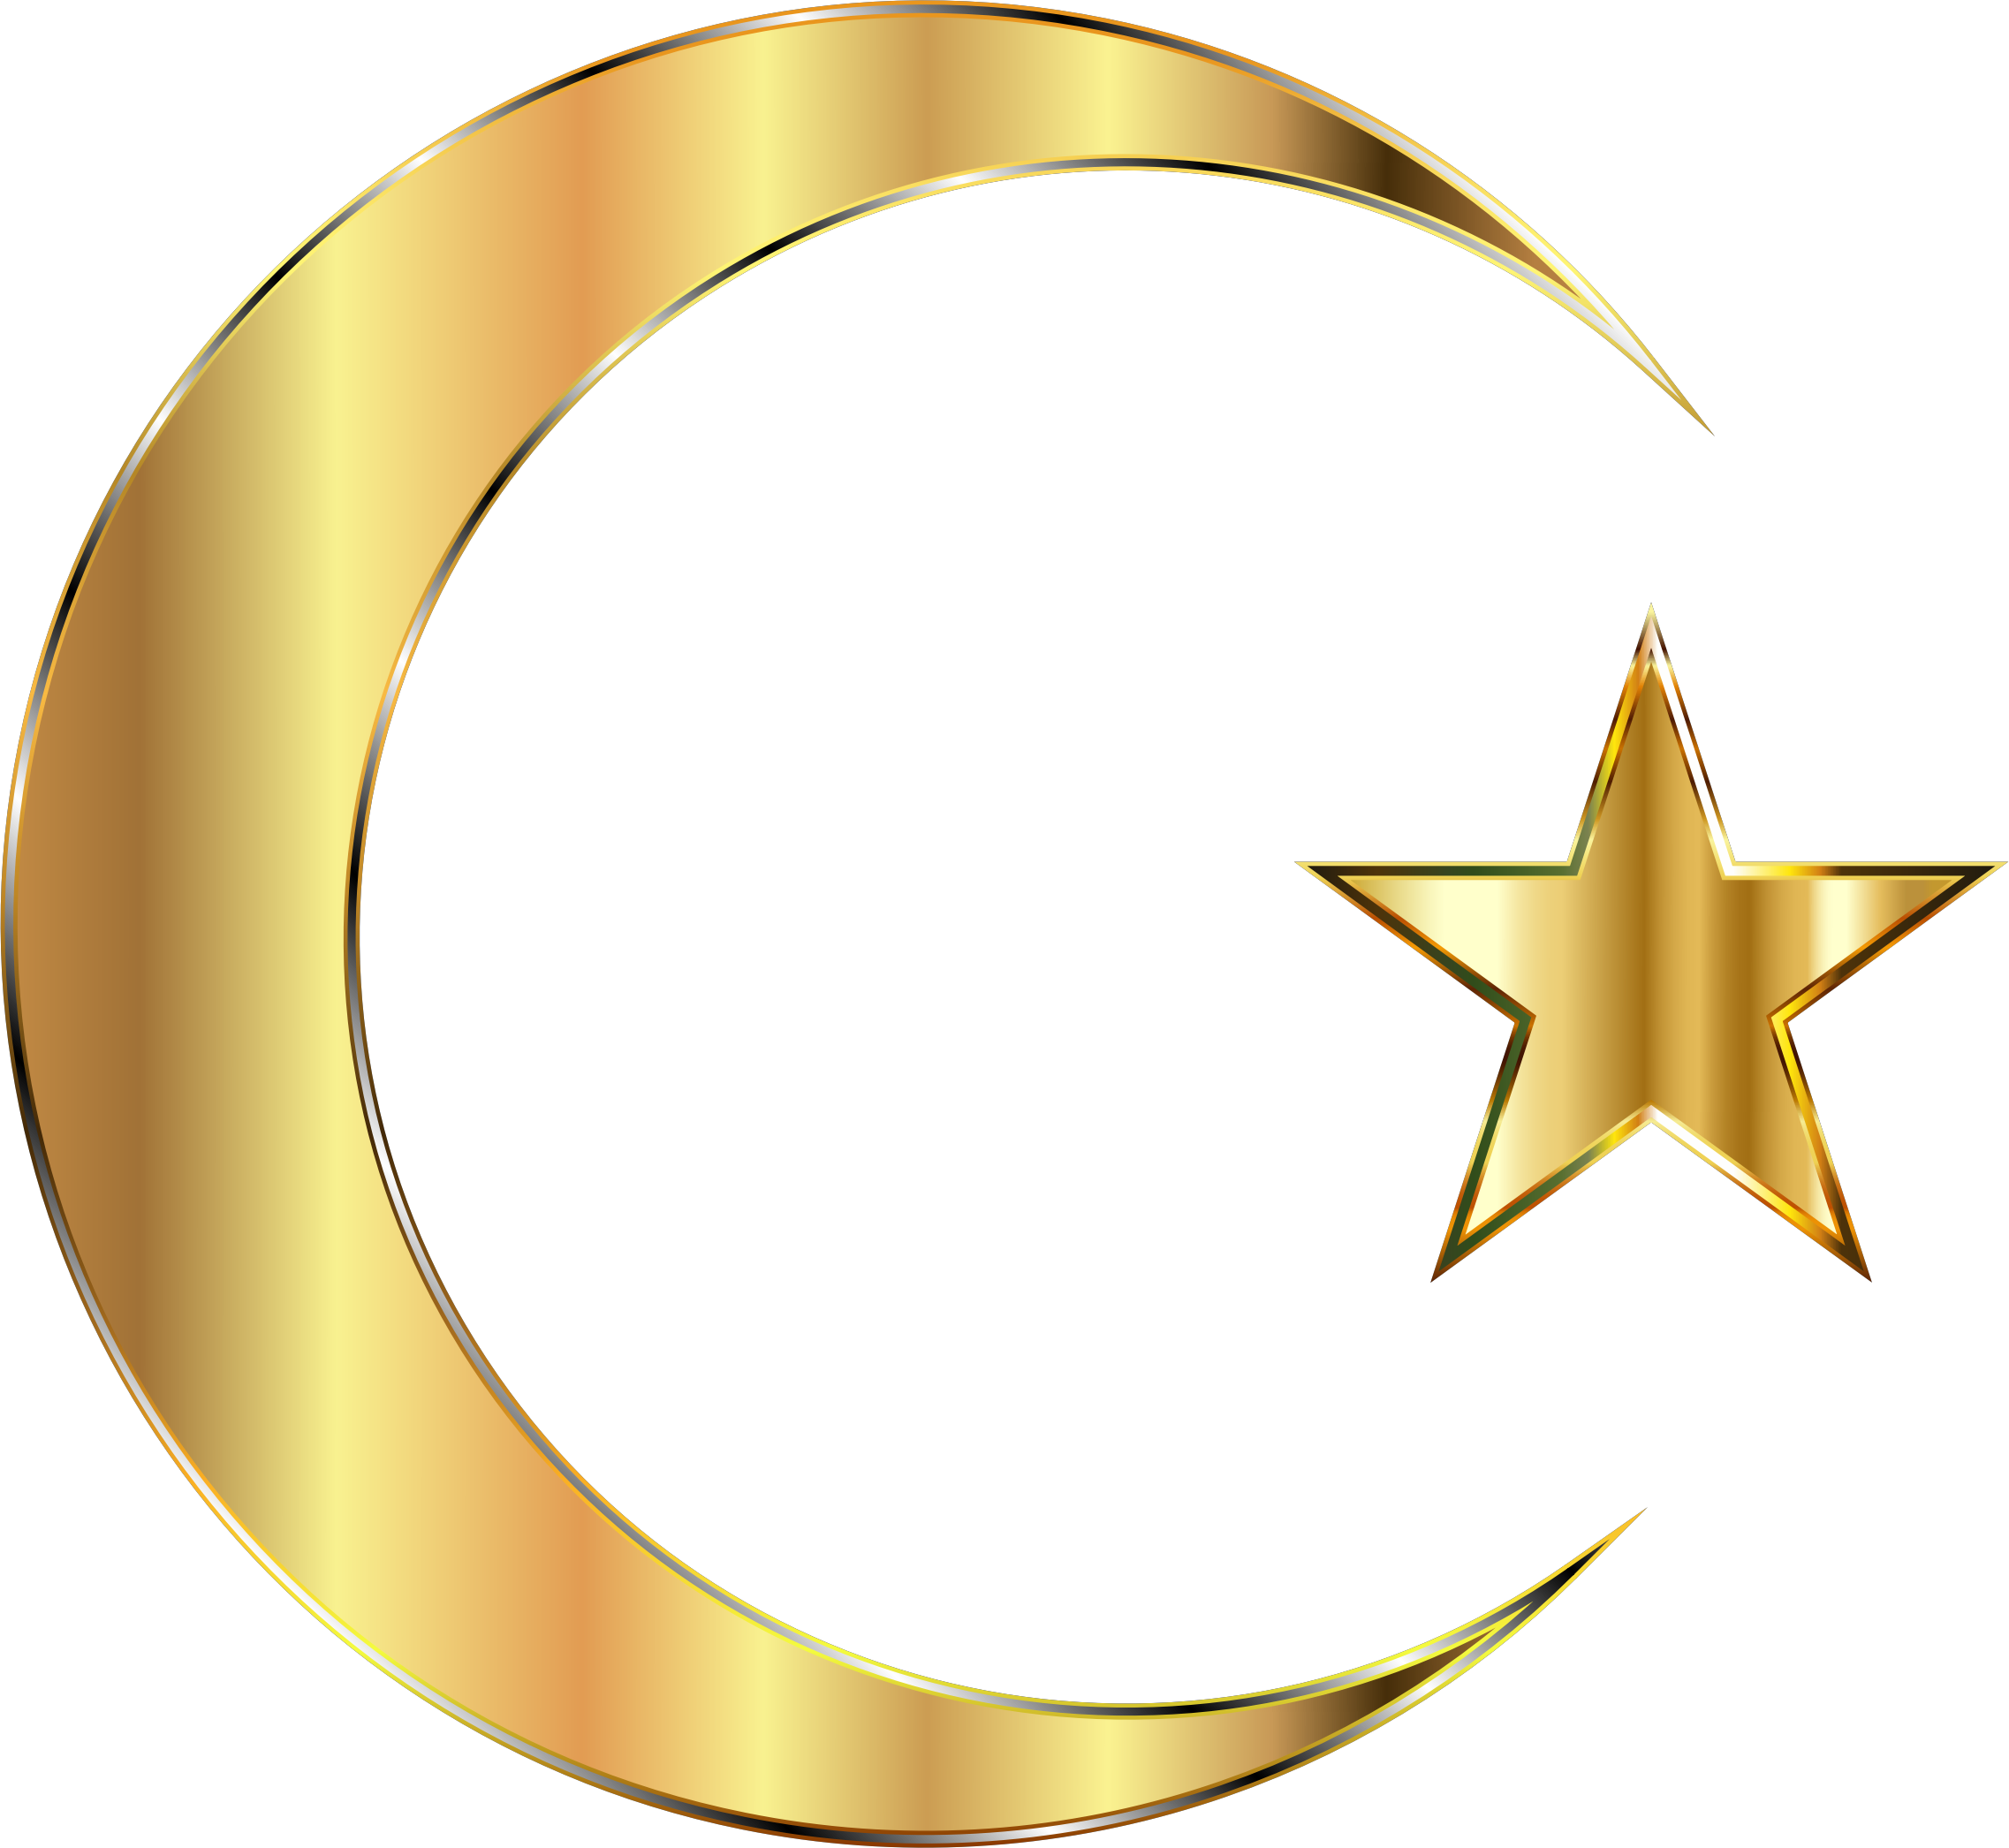 Crescent clipart vector. Golden moon and star